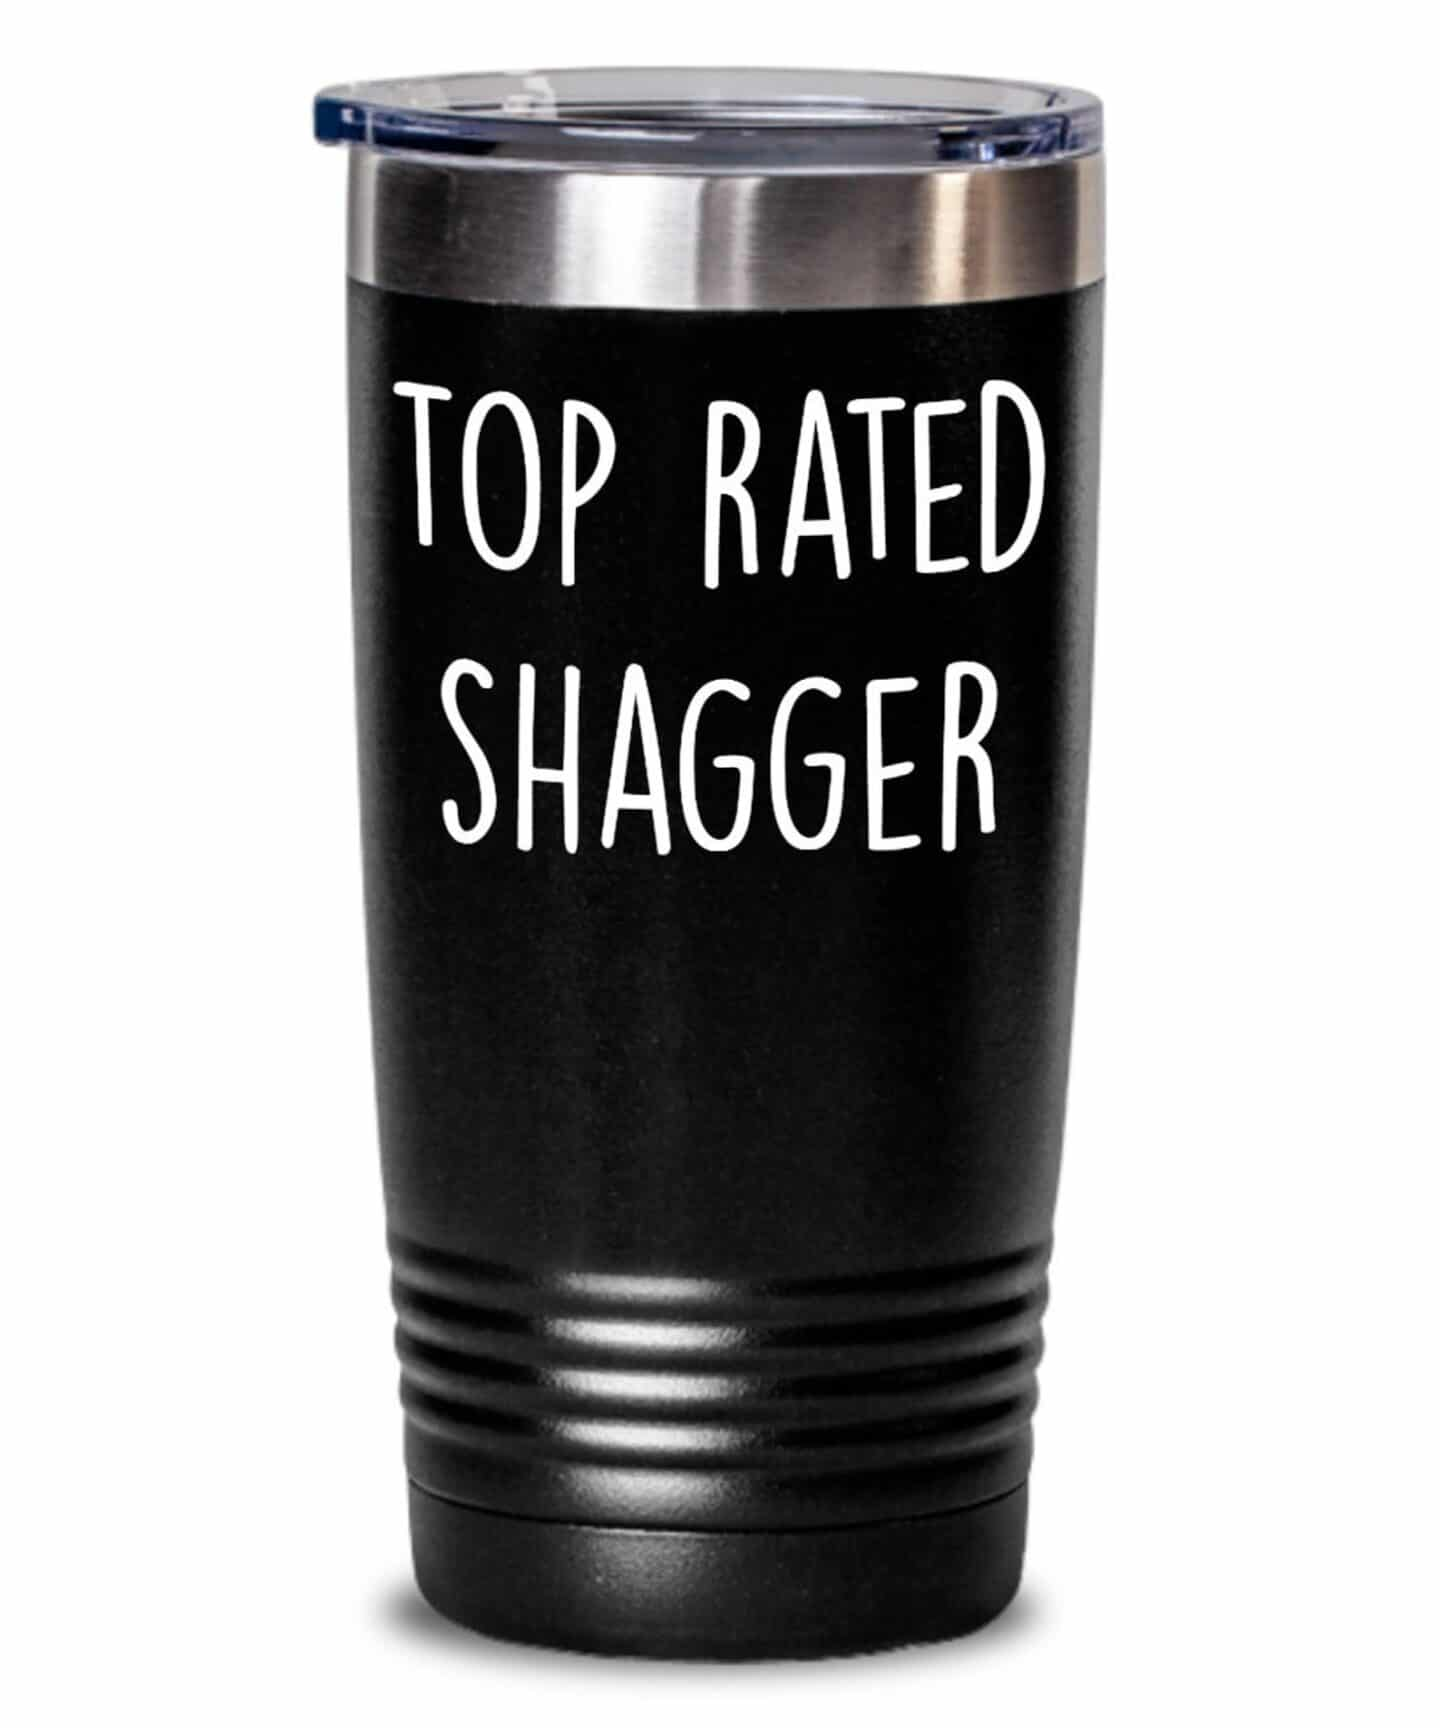 This hilarious tumbler is a perfect naughty valentines day gift idea for him